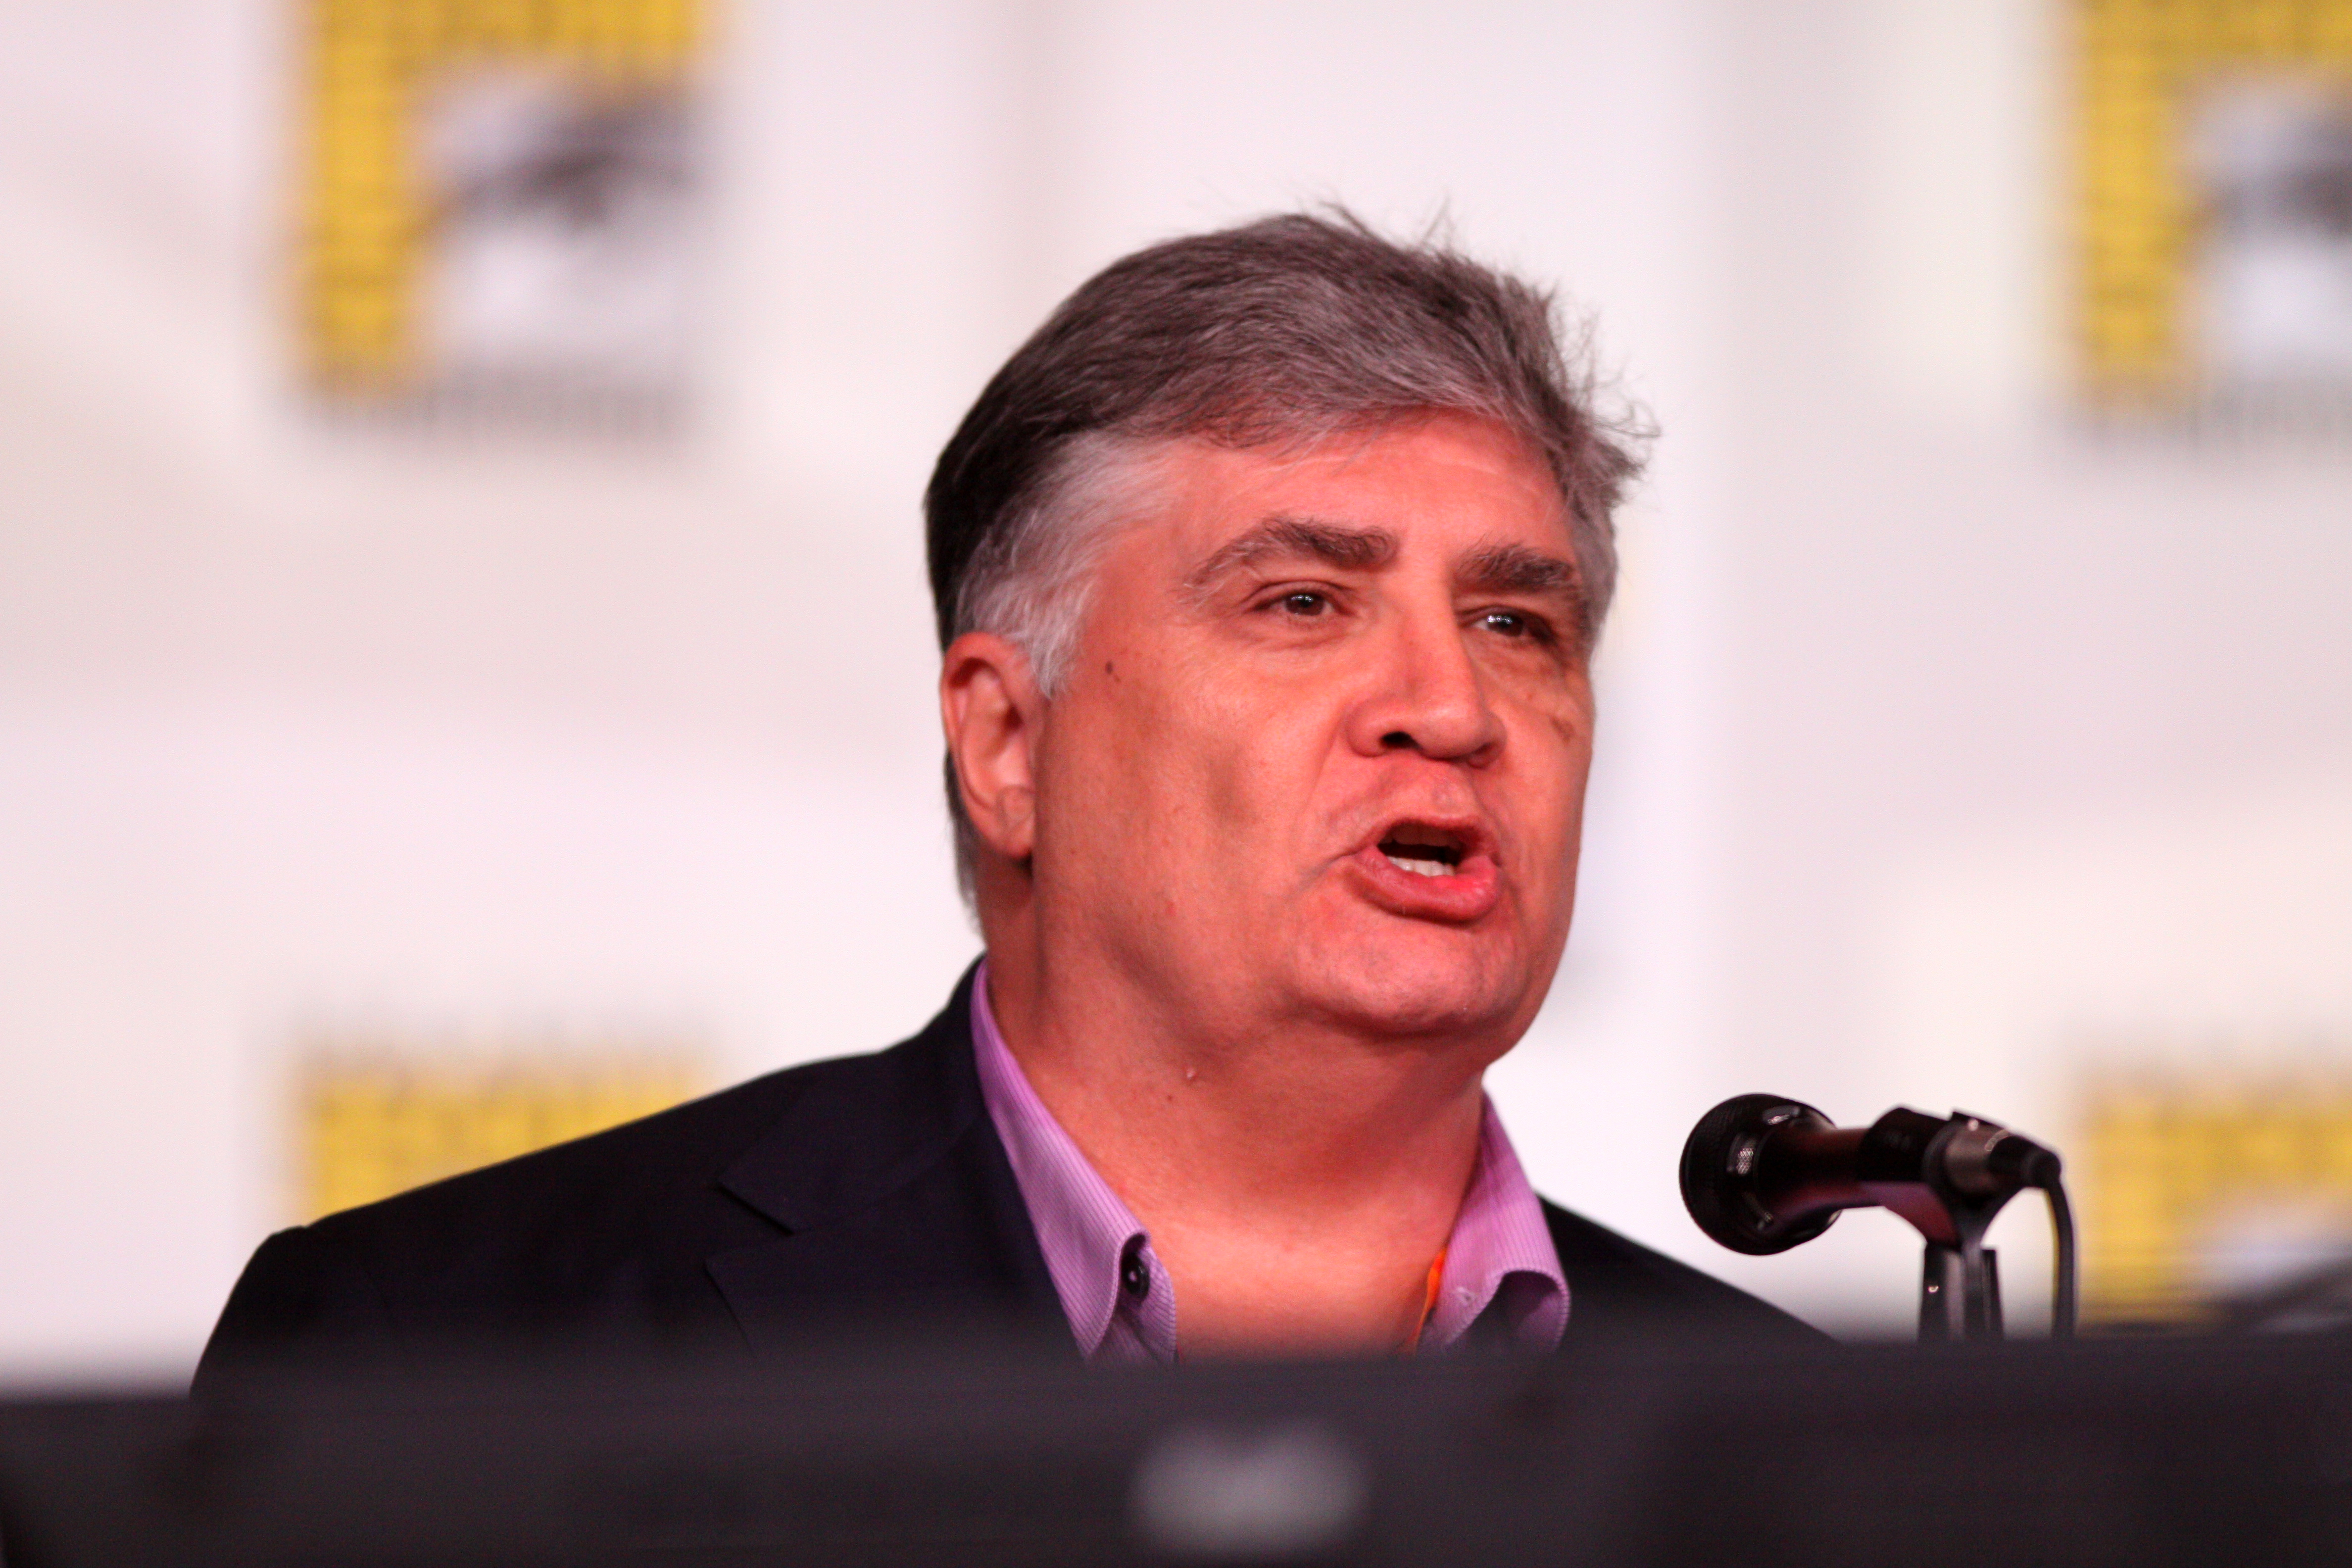 Maurice LaMarche nude (48 foto and video), Ass, Paparazzi, Boobs, butt 2020